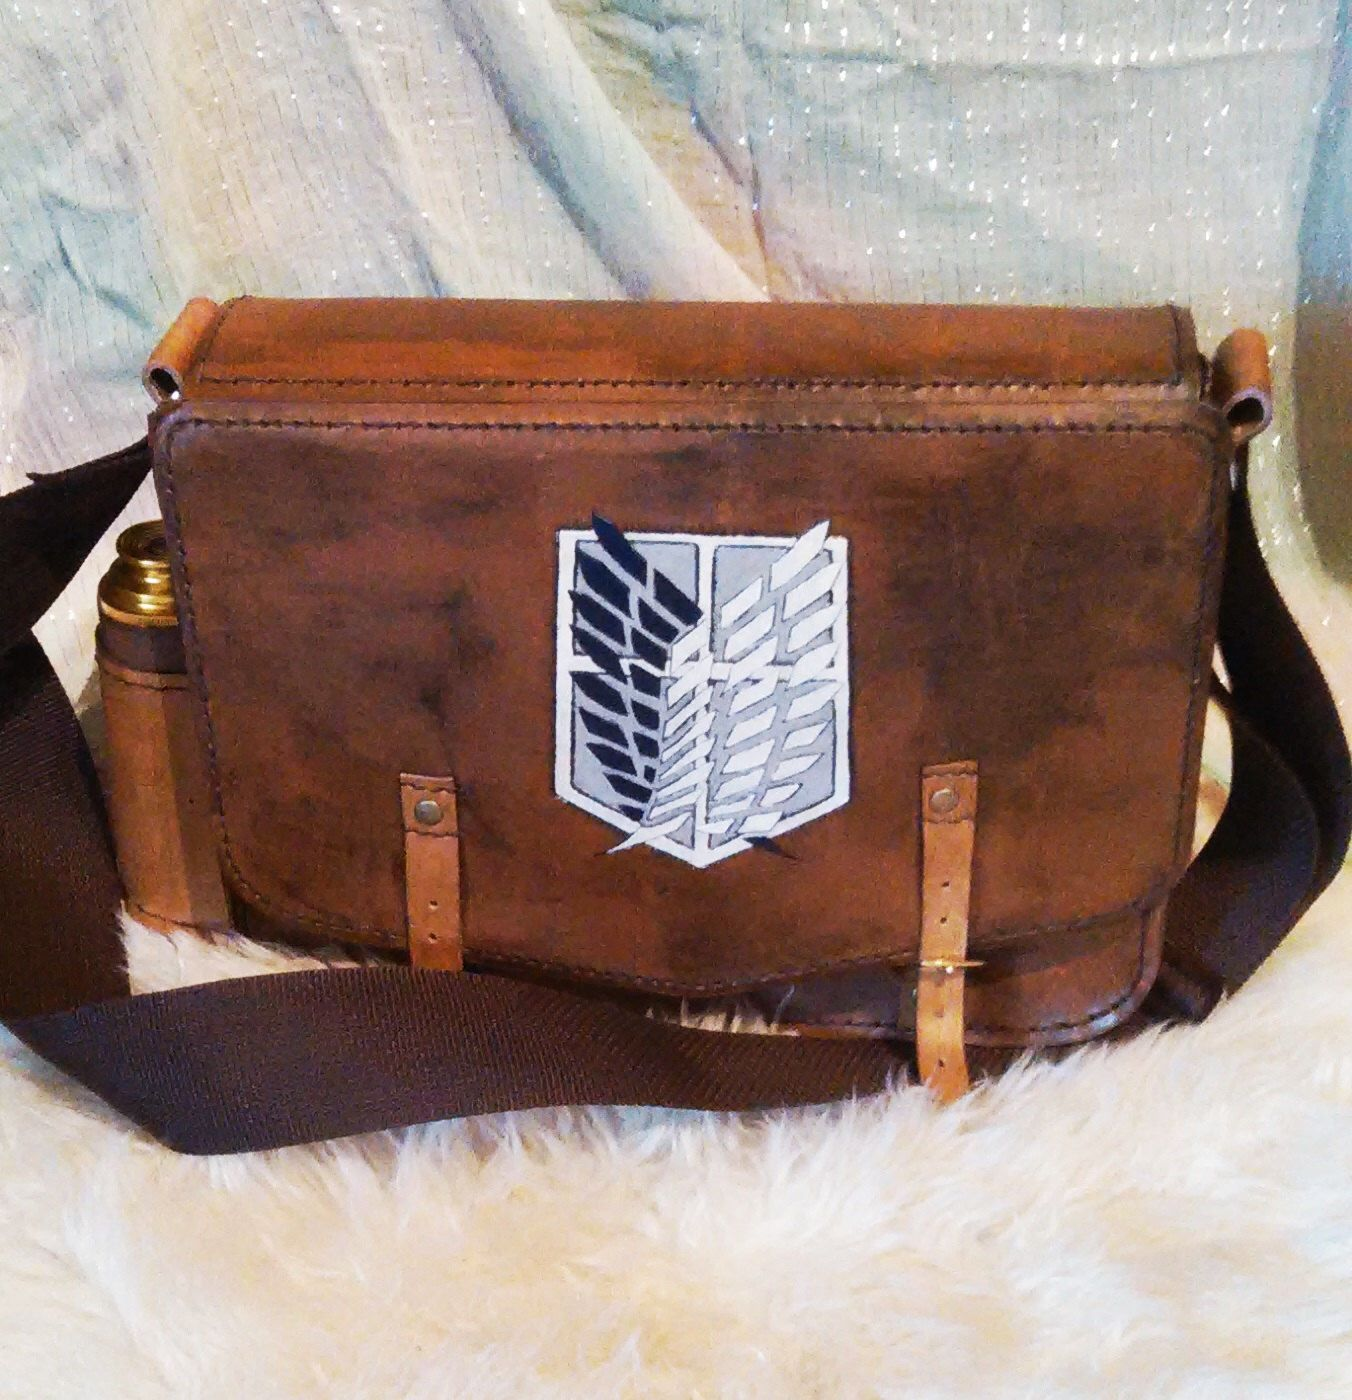 attack on titan messenger bag by luithienscreation on etsy